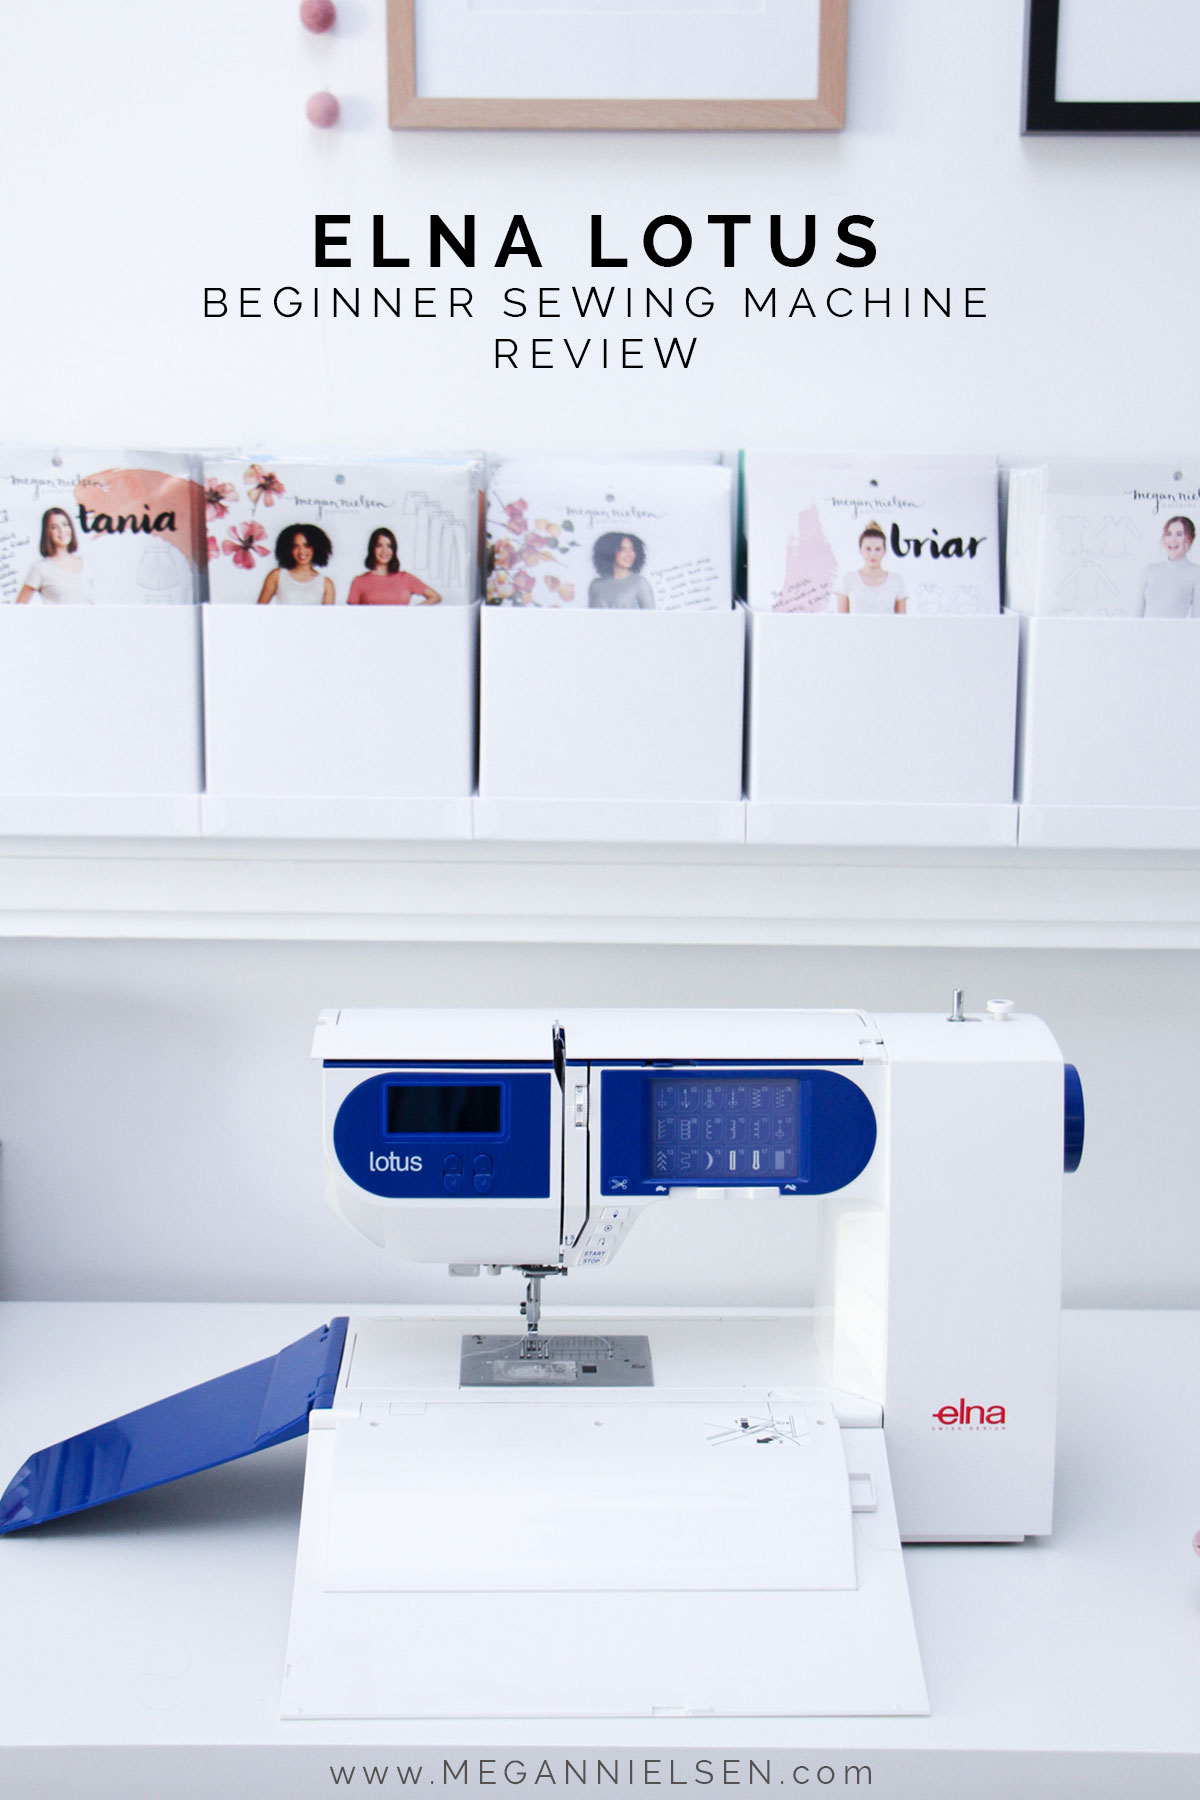 Elna Lotus Review // Beginner sewing machine recommendation // Megan Nielsen Design Diary